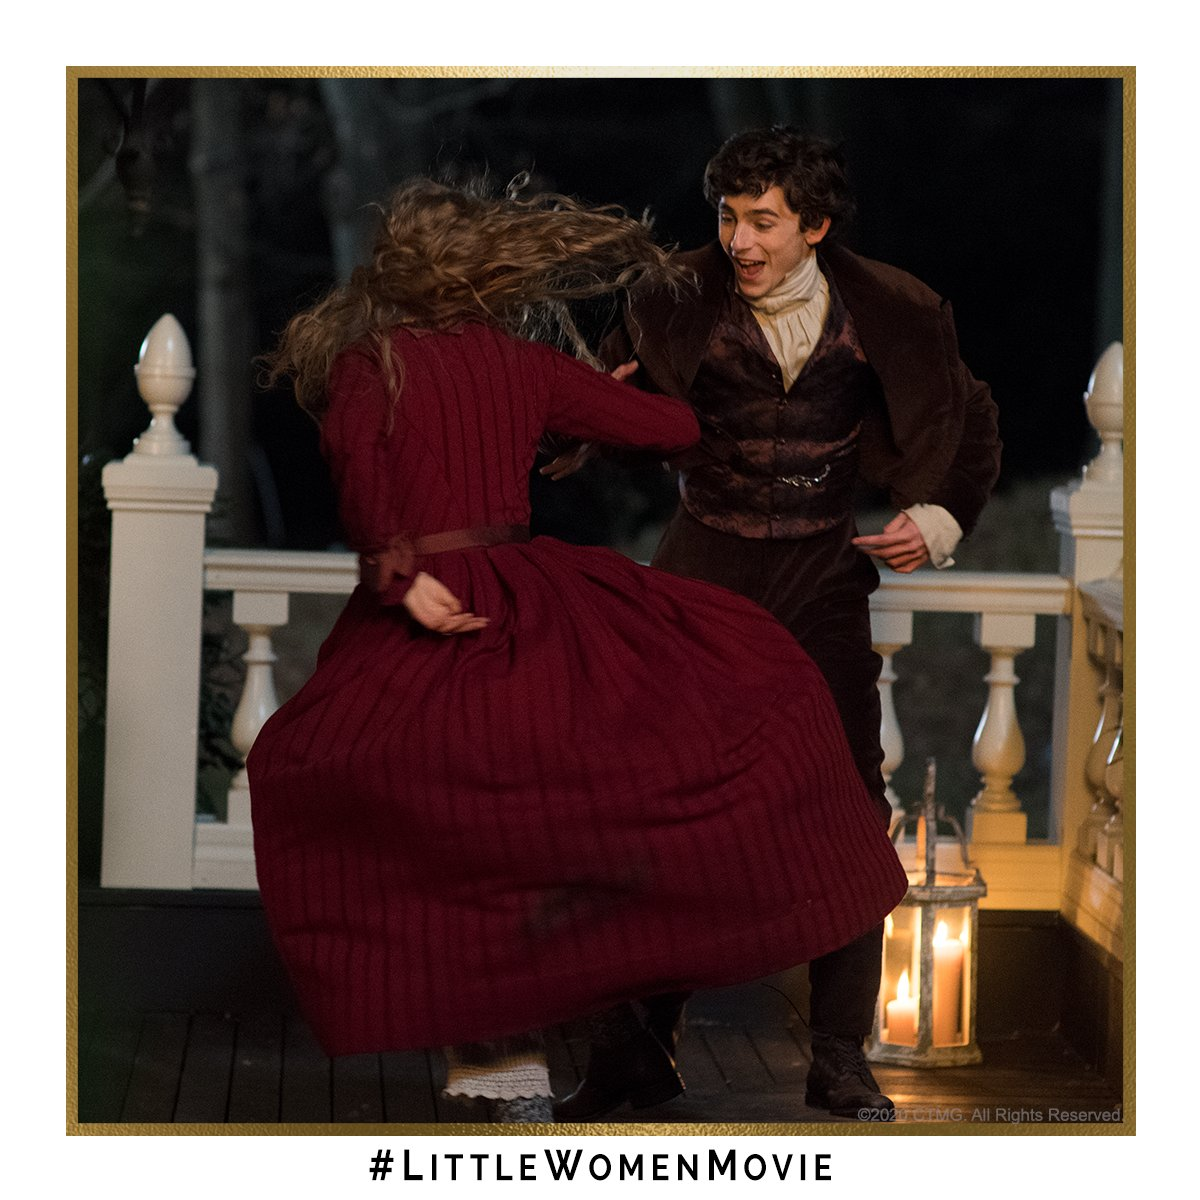 How we feel about the long weekend… It's the perfect time to see #LittleWomenMovie, now playing in theaters!